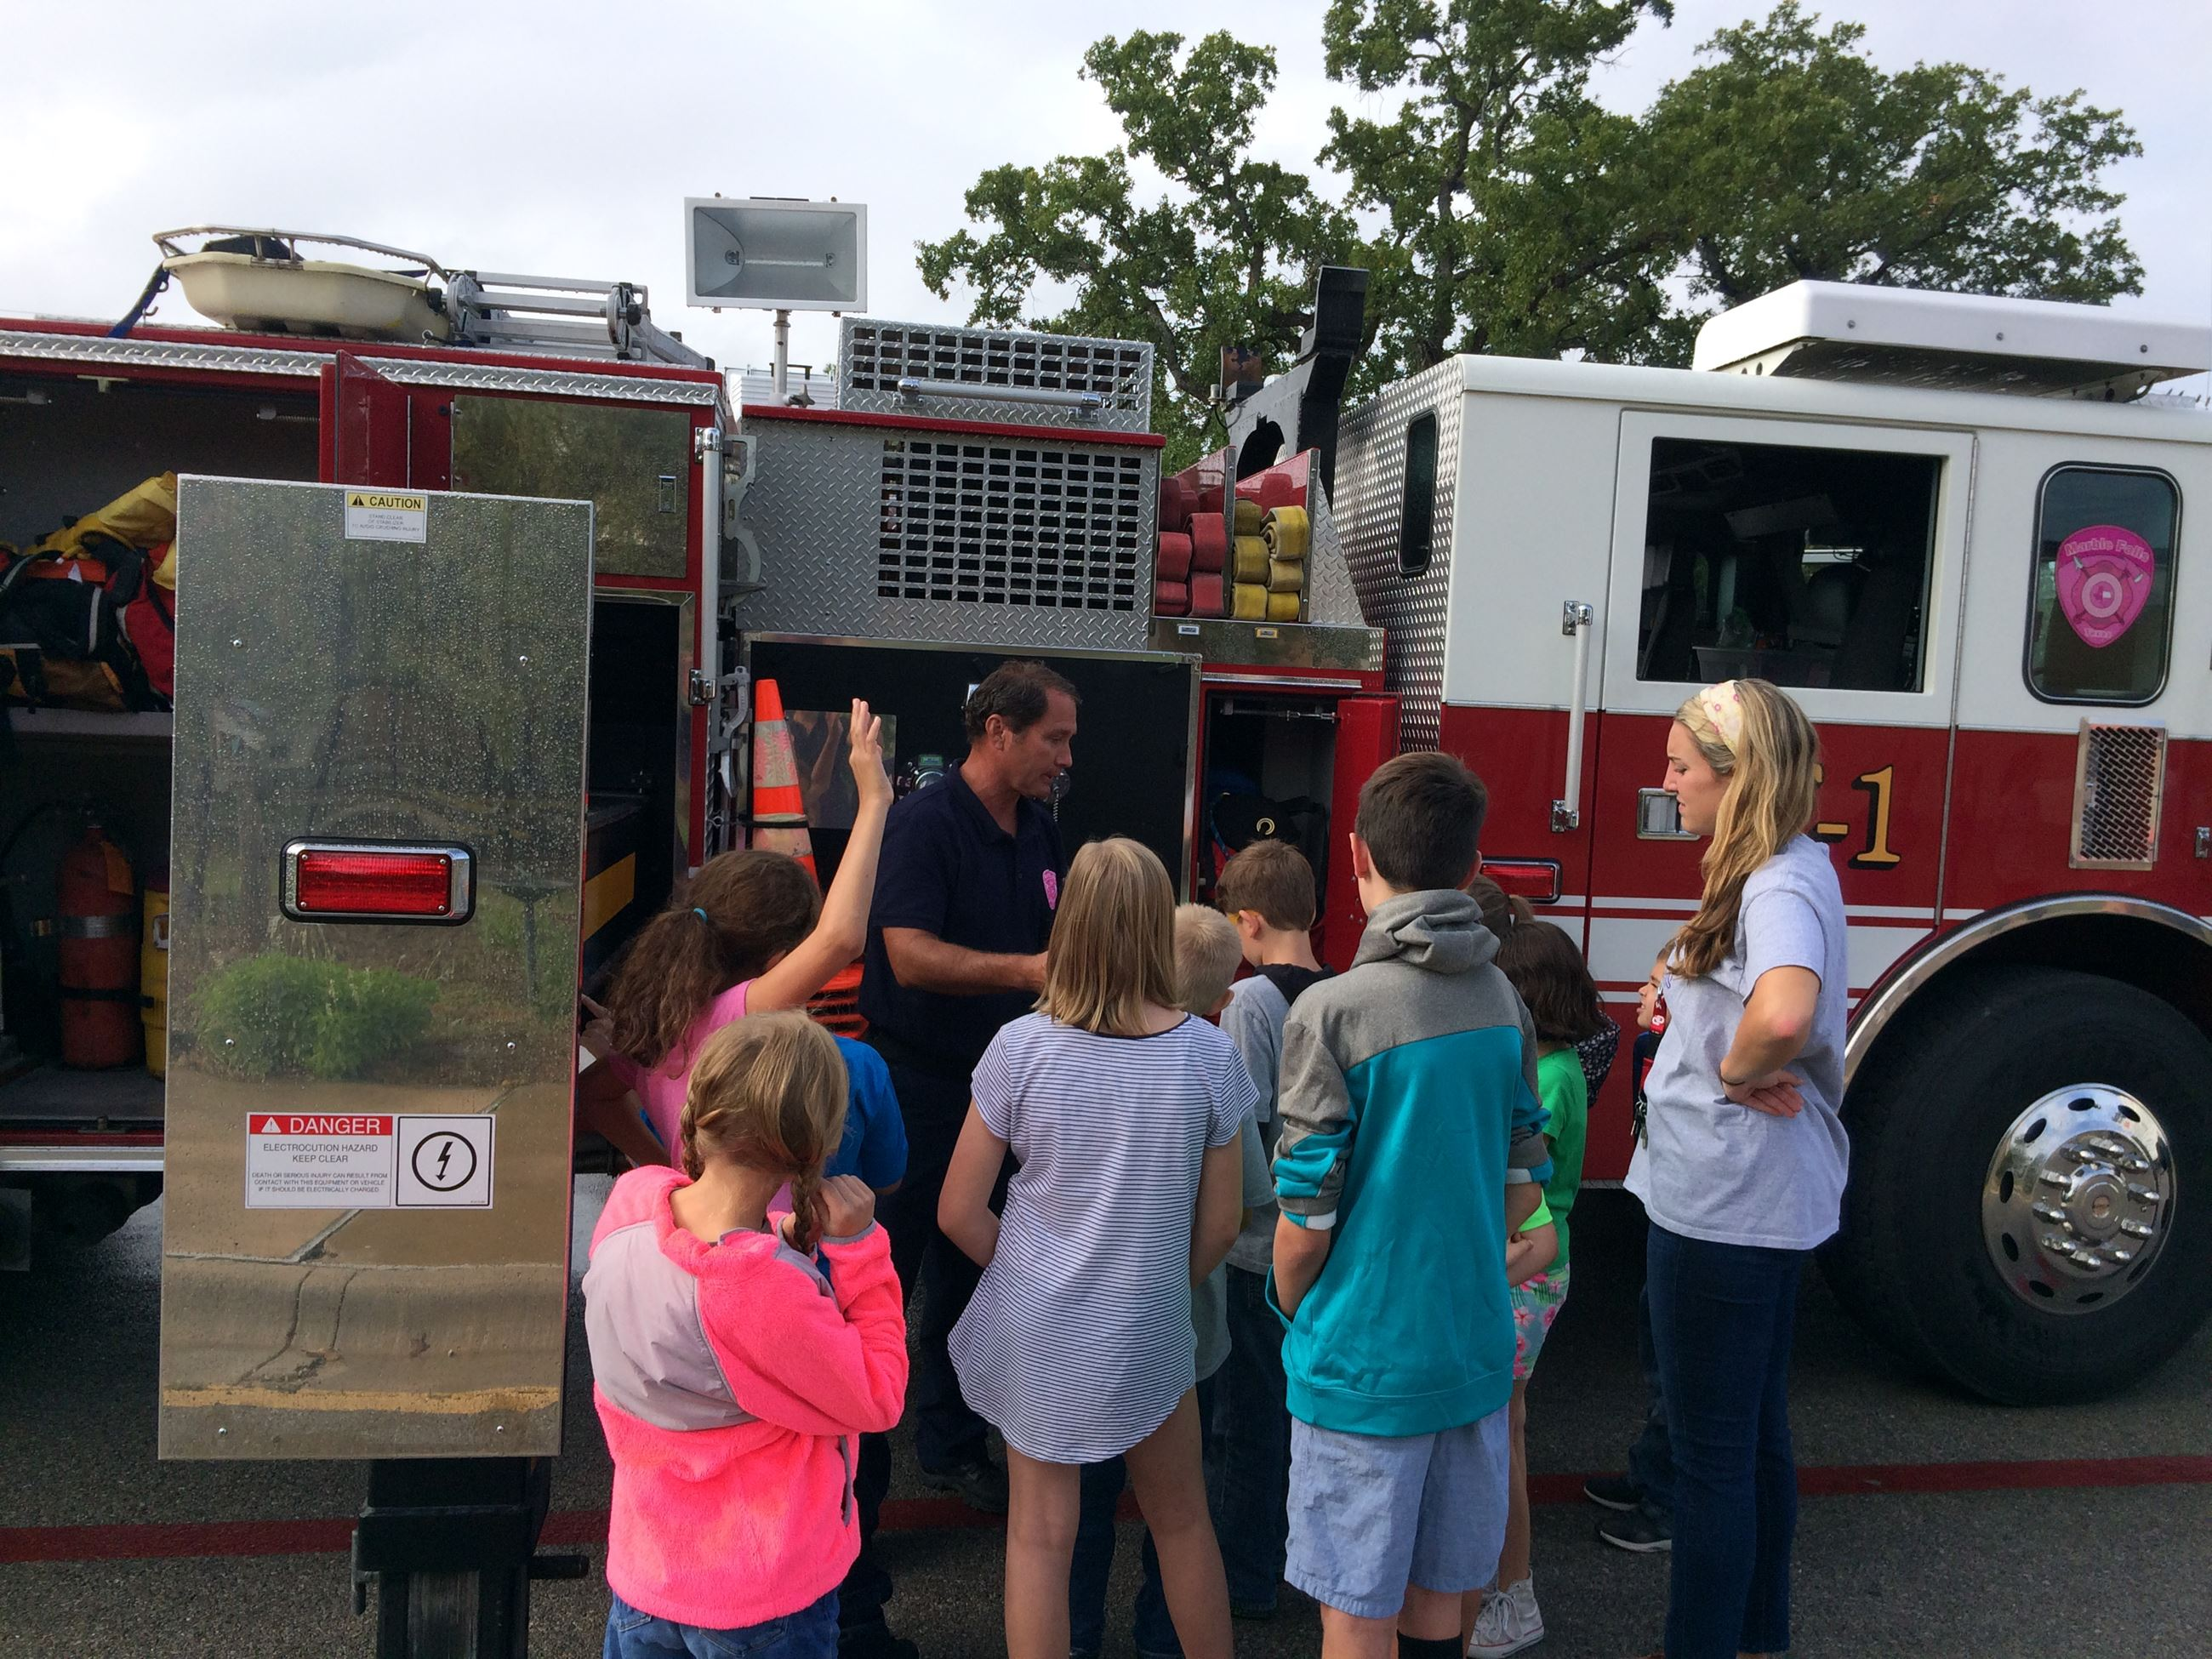 Children gather next to a fire truck